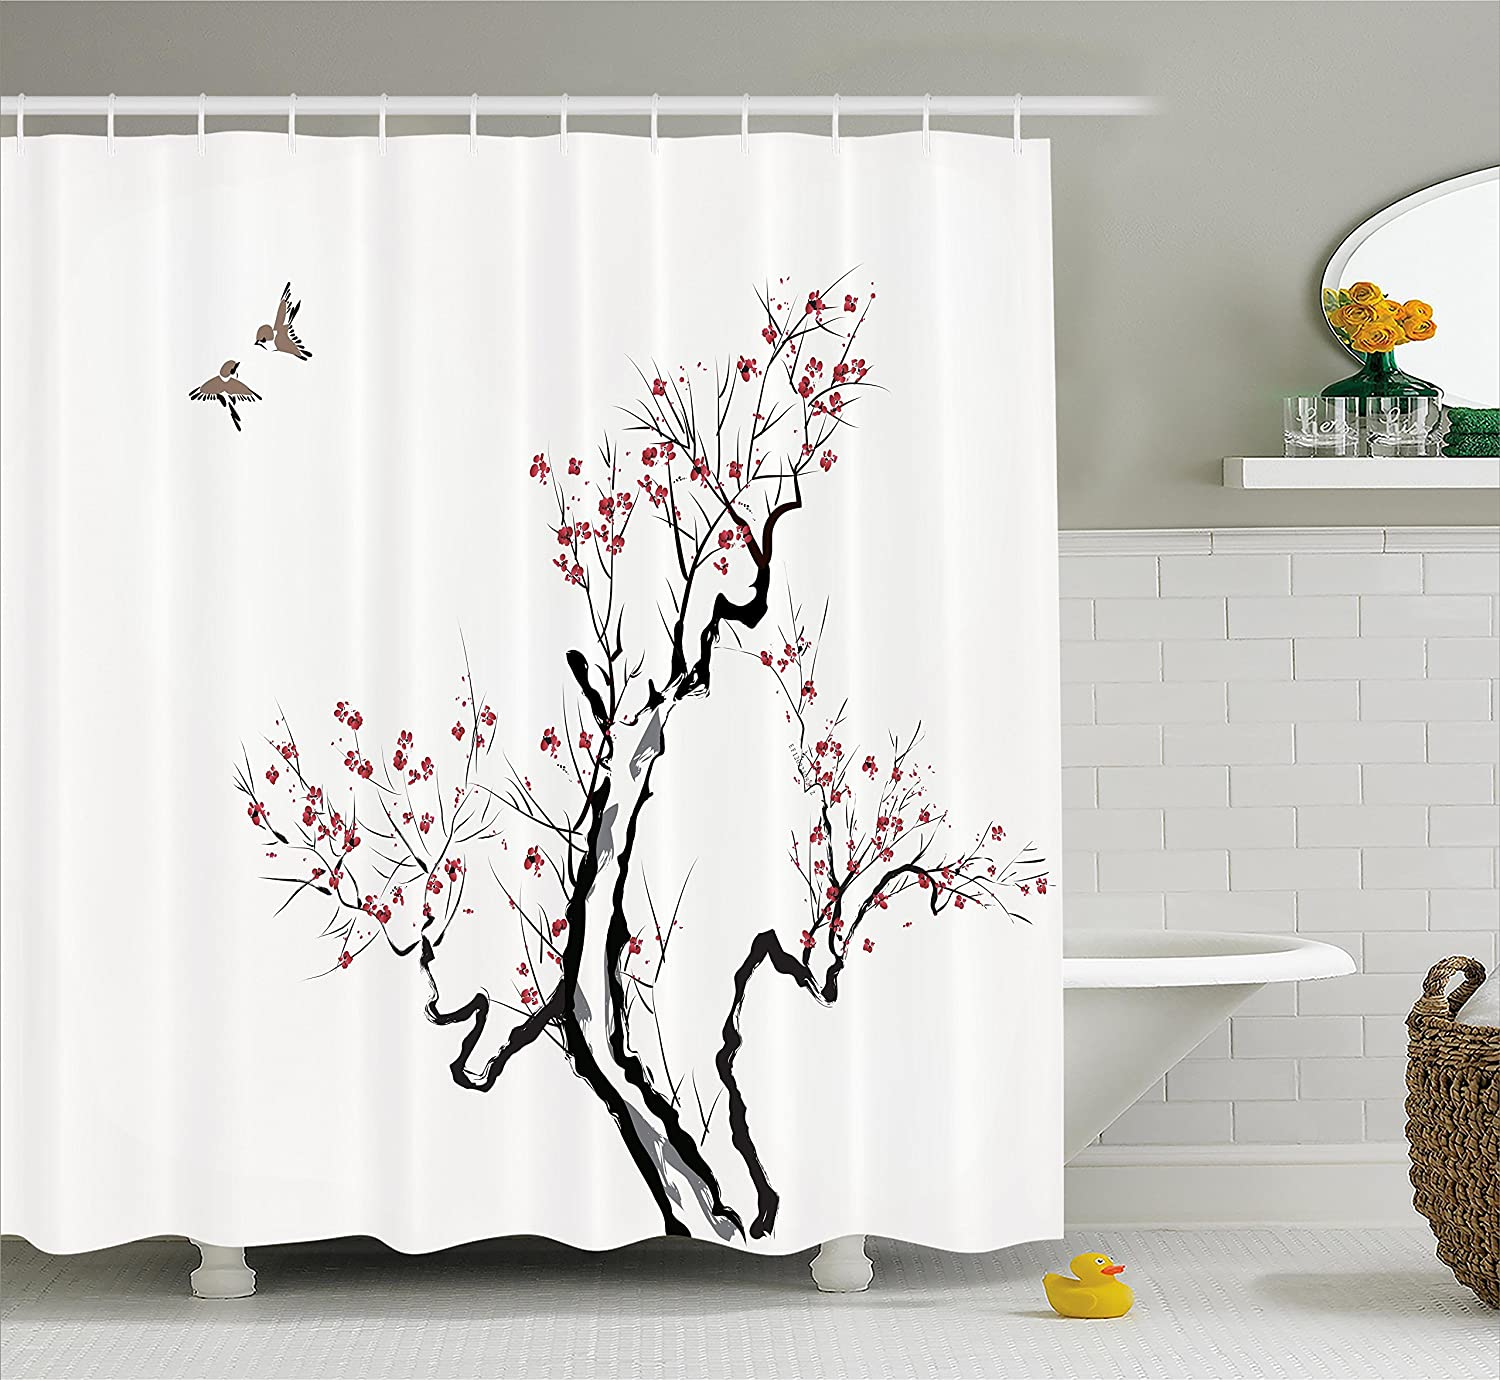 Tropical Rain Forest Tall Bamboo Trees in Grove Exotic Asian Nature Zen Decor Style Image Ambesonne Bamboo Decor Shower Curtain Set Bathroom Accessories Green 84 inches Extralong